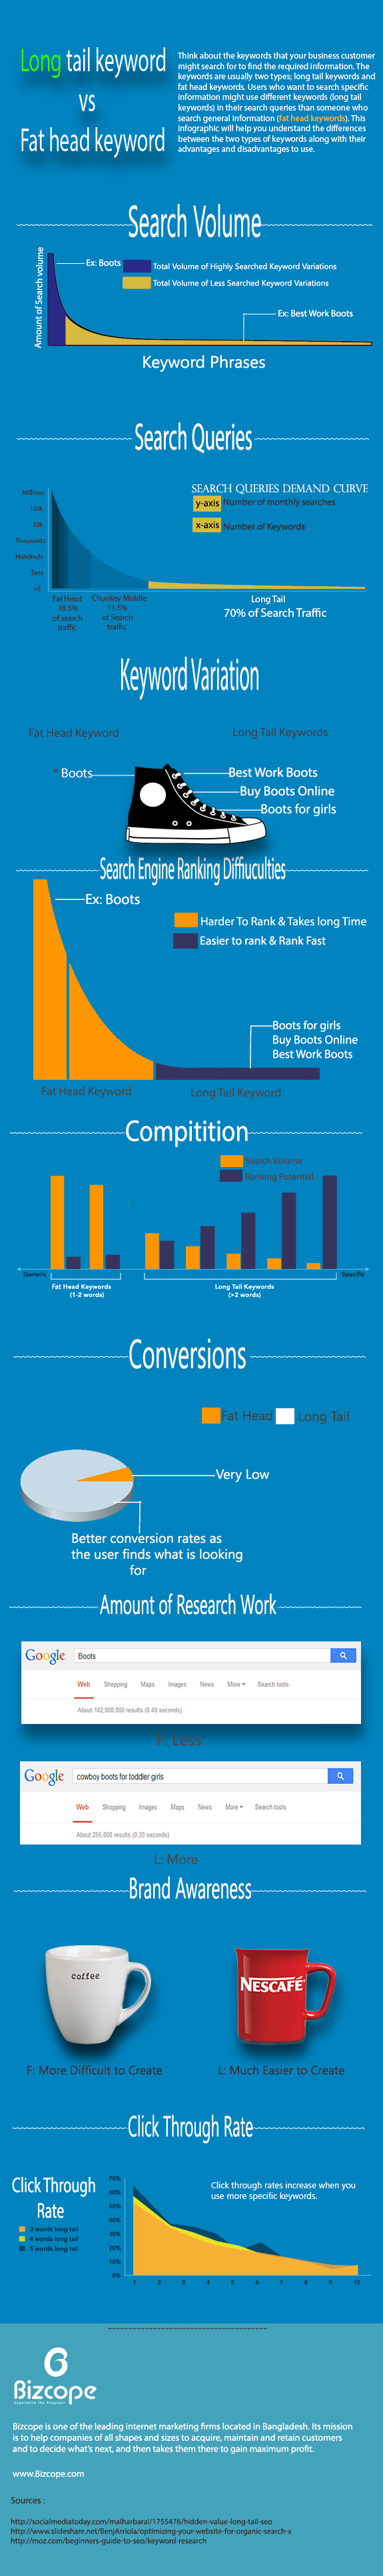 Long Tail Keywords vs Fat Head Keywords